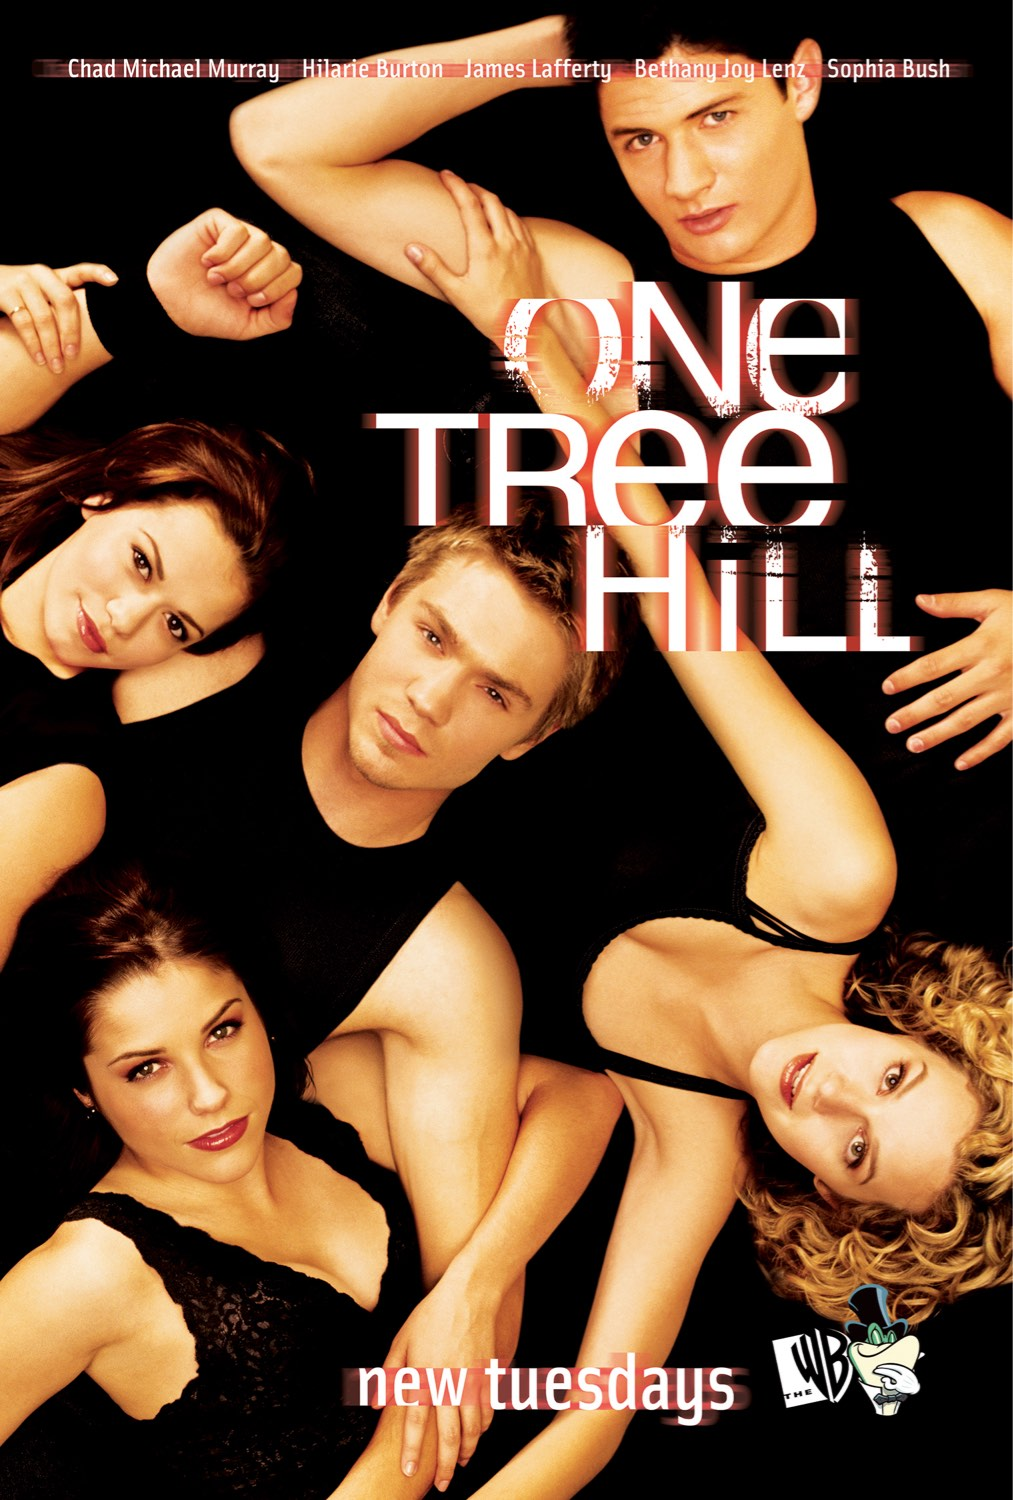 ONE TREE HILL A.jpg